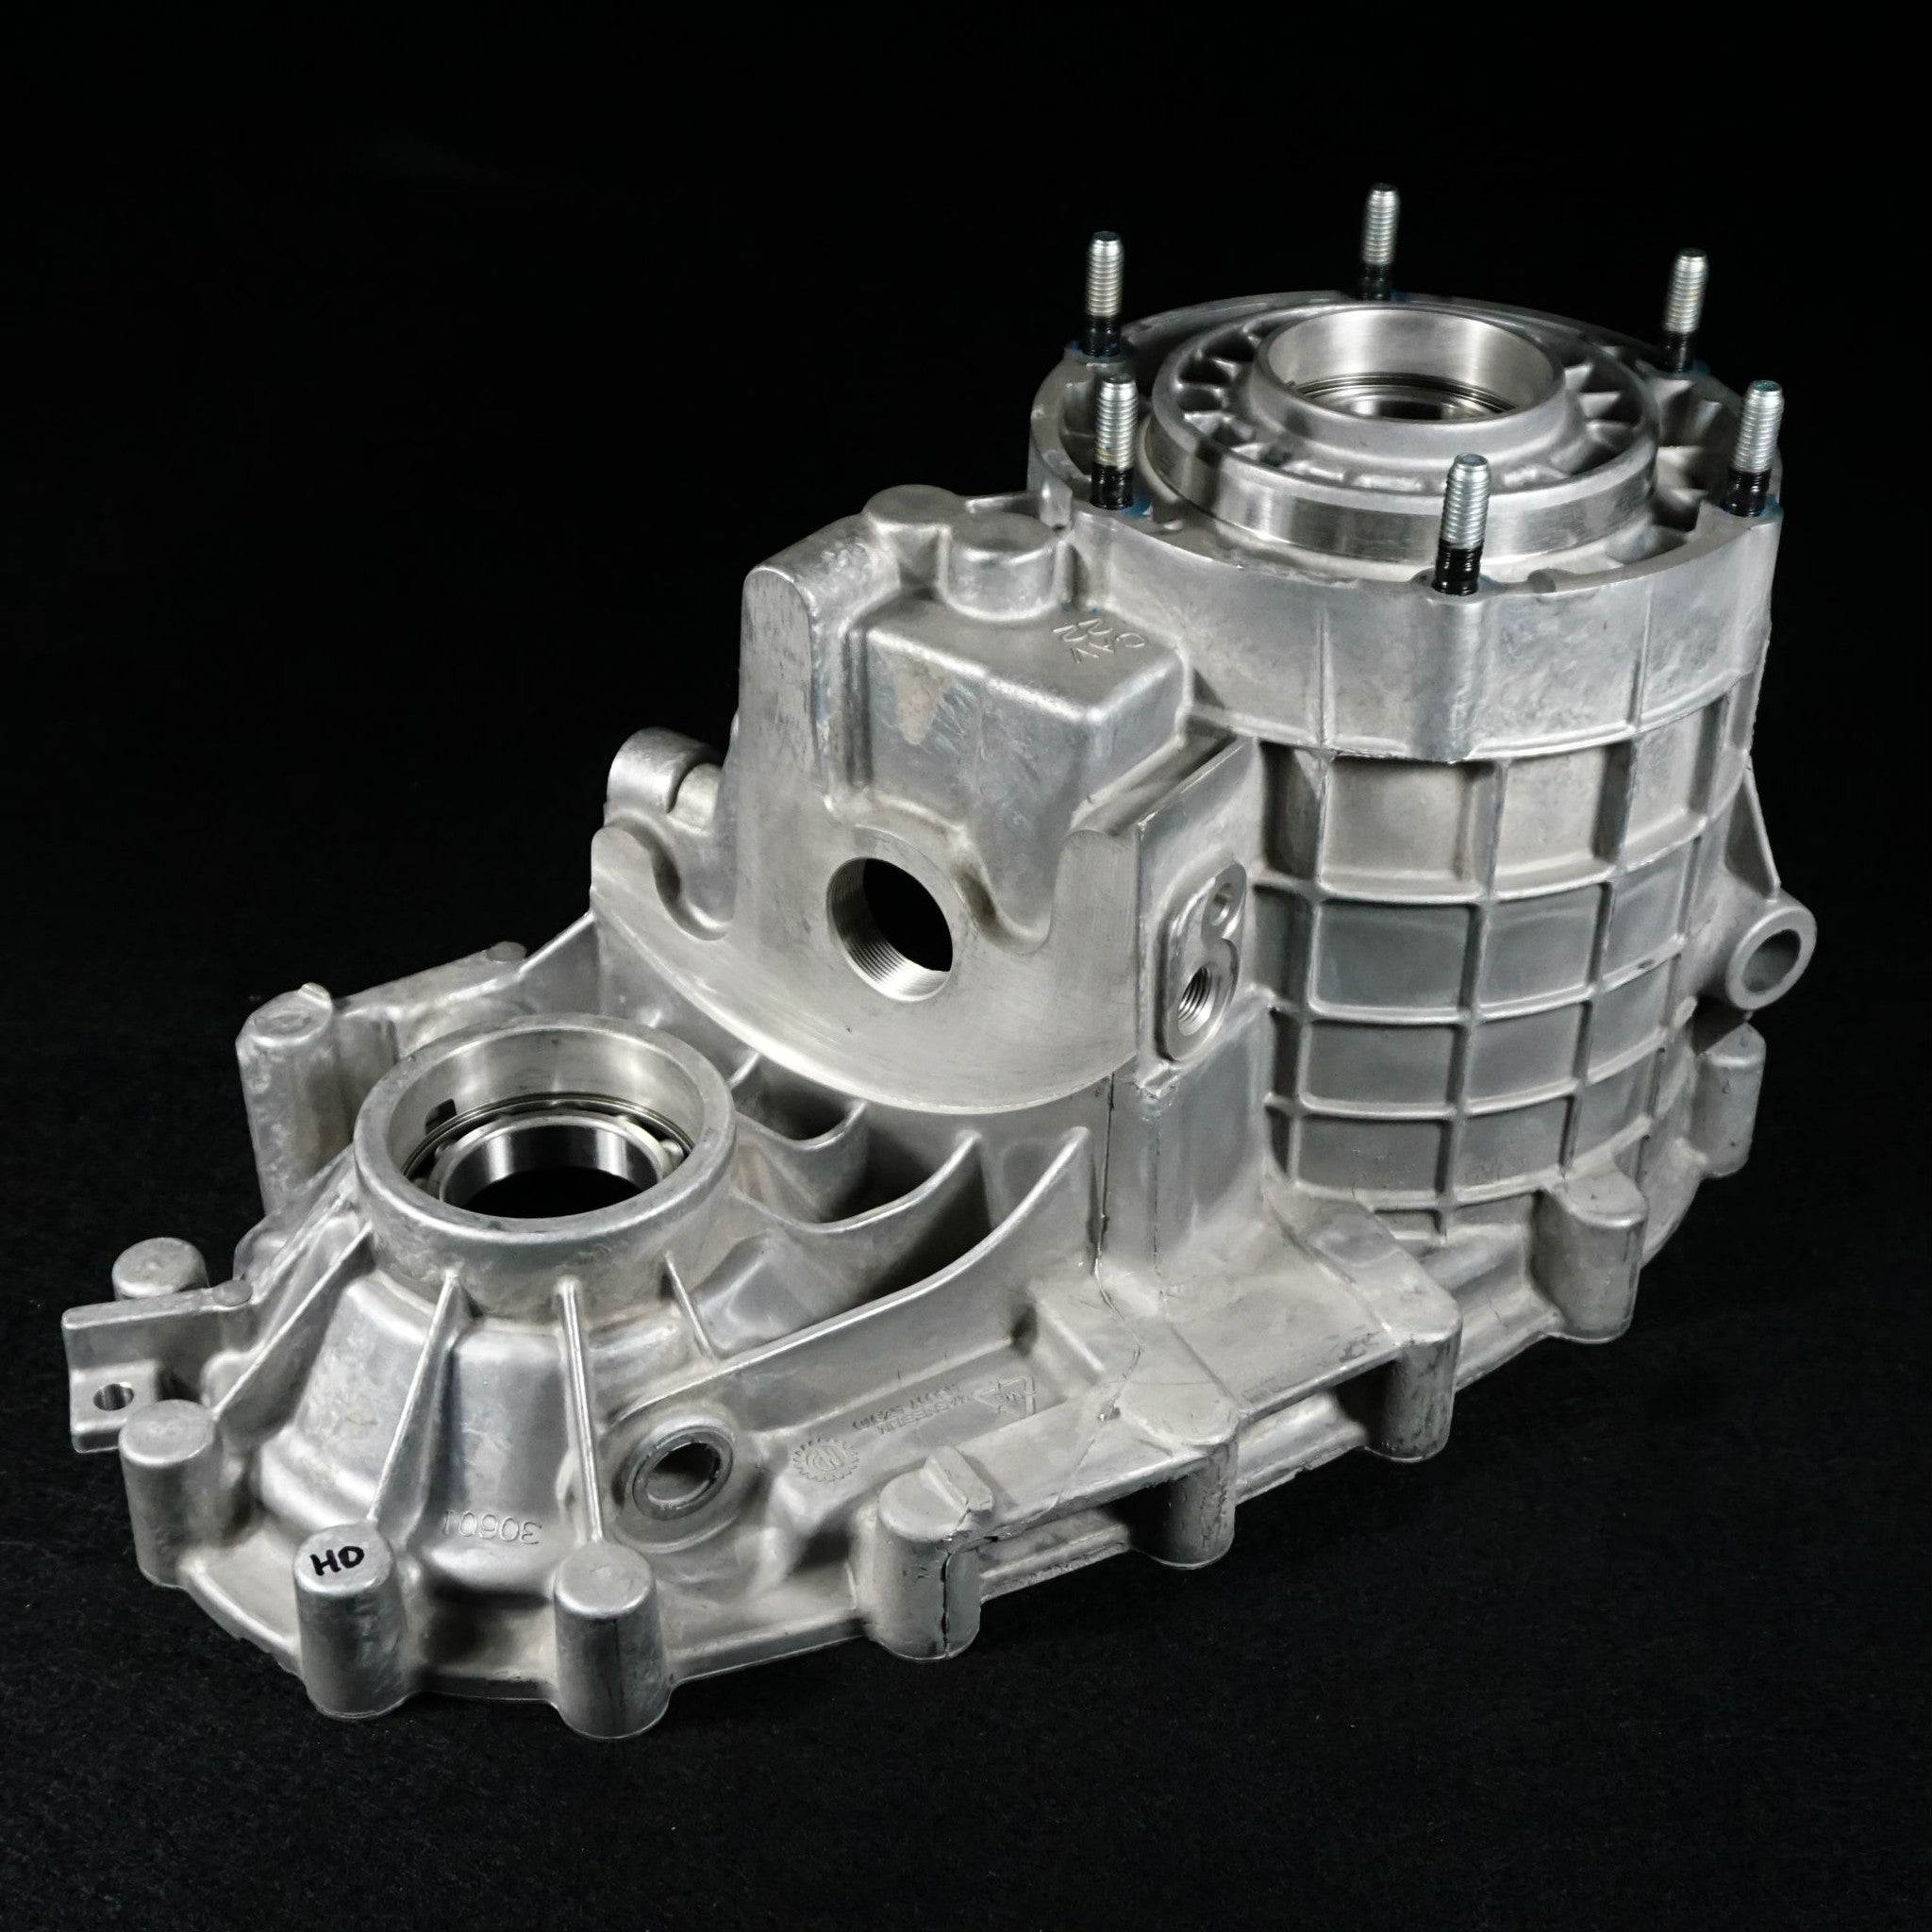 Https Daily Products 149 Chevy 261 Transfer Case 3 Hd Front 03v1487188444